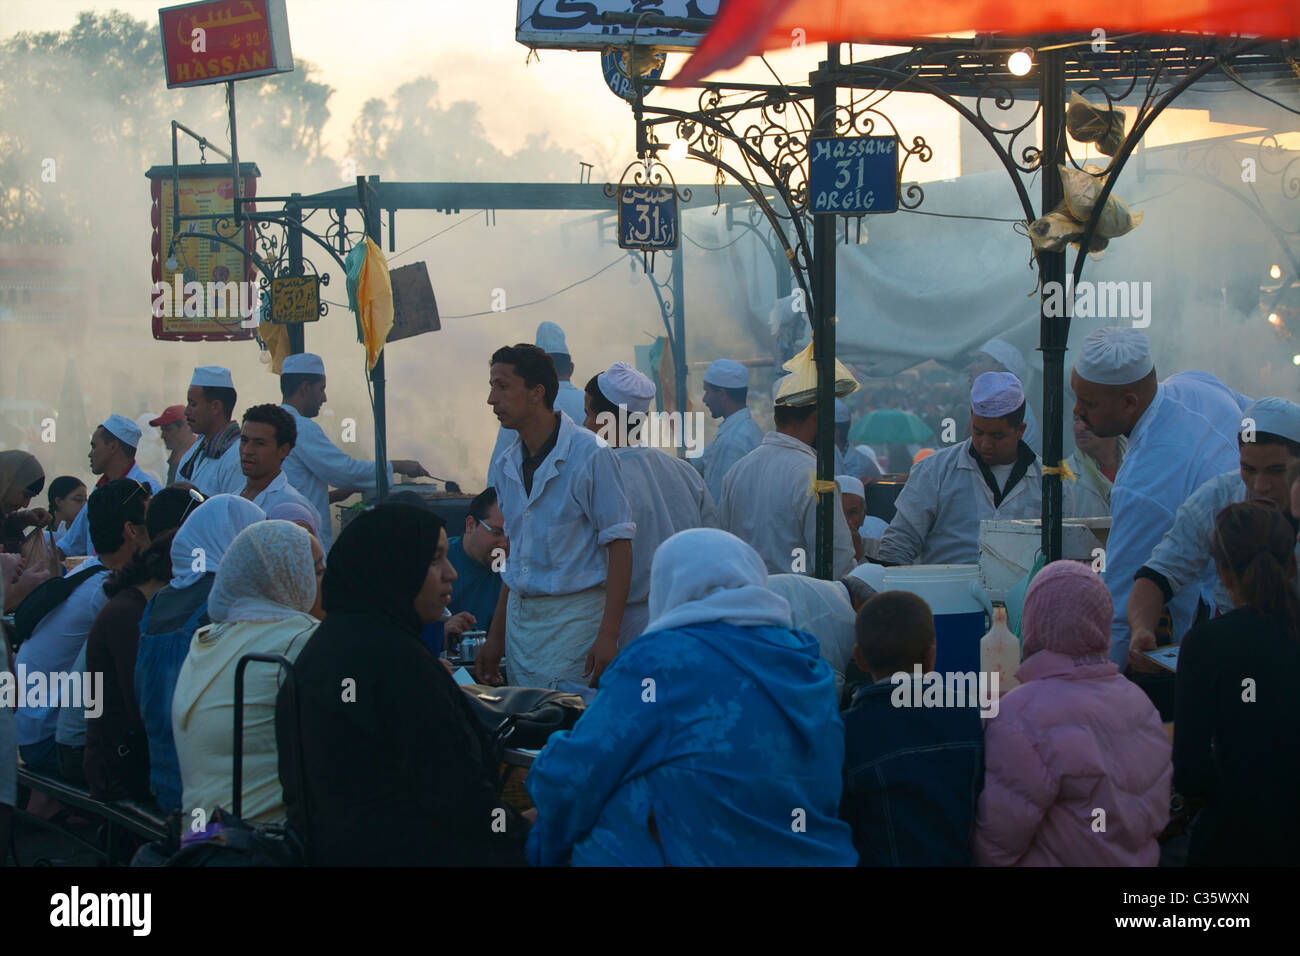 Bustling food stall in the main square, Marrakech, at dusk. - Stock Image